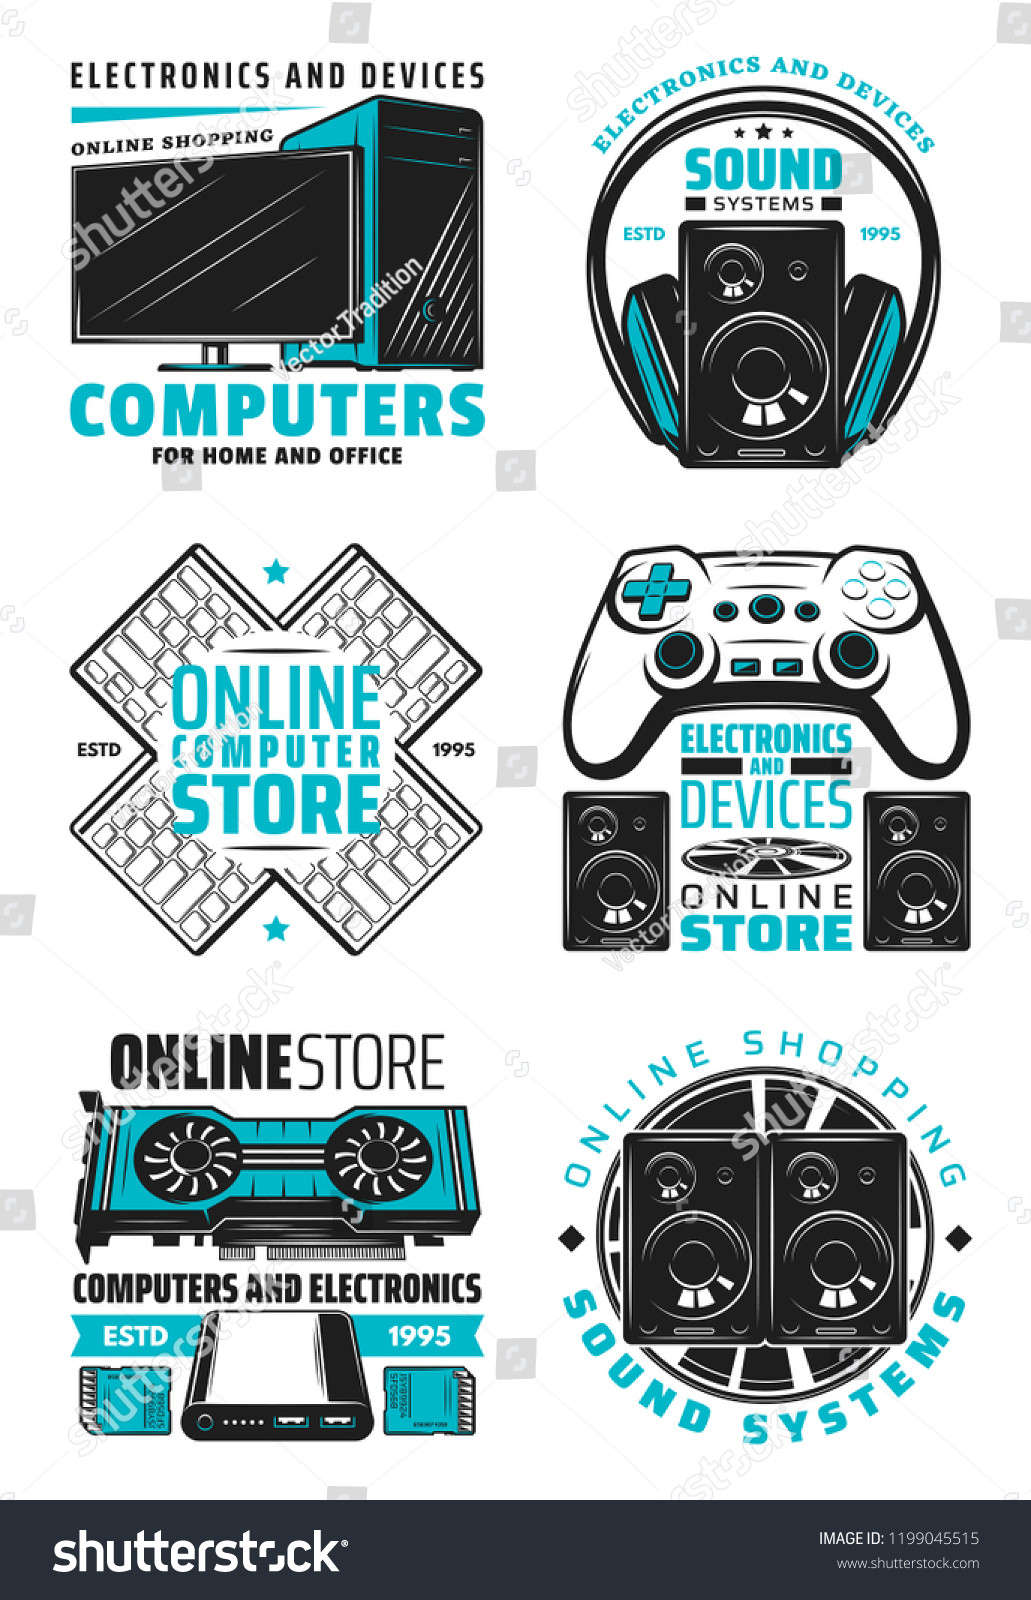 Computer Online Store Electronic Devices Computer Online Store Icons Stock Vector